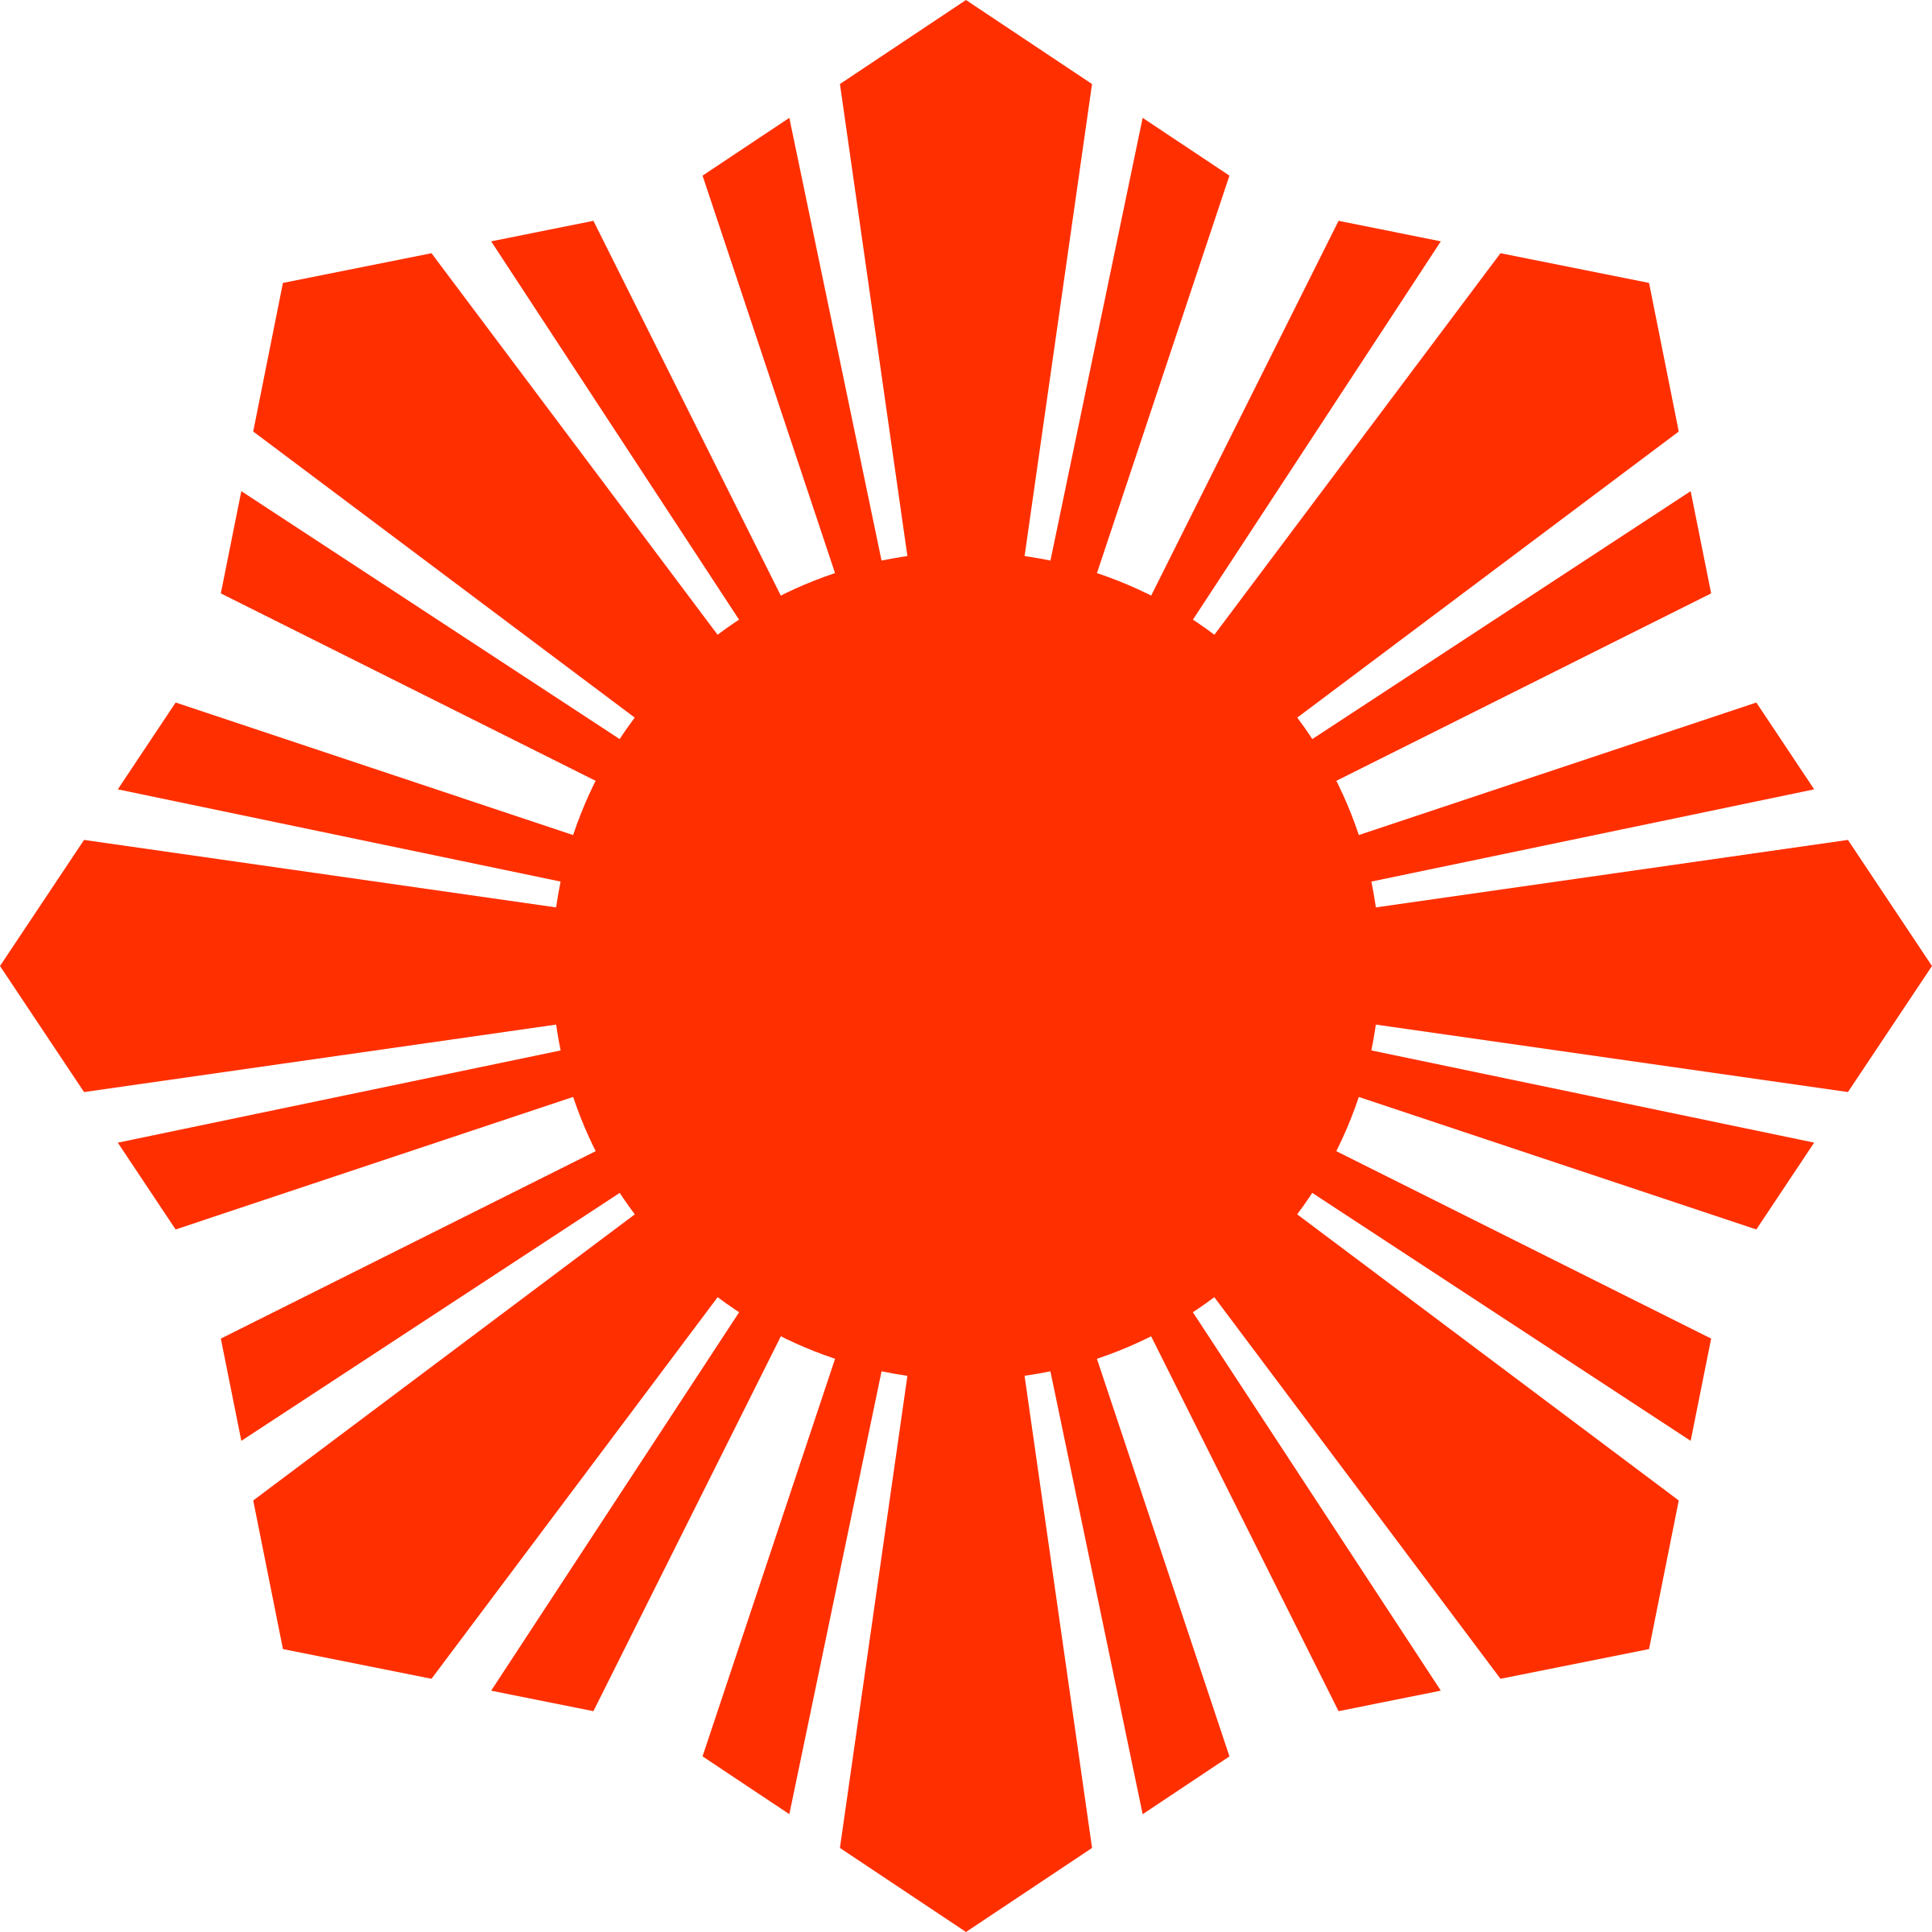 Red sun rays clipart graphic royalty free stock Clipart - Sun Symbol Red graphic royalty free stock